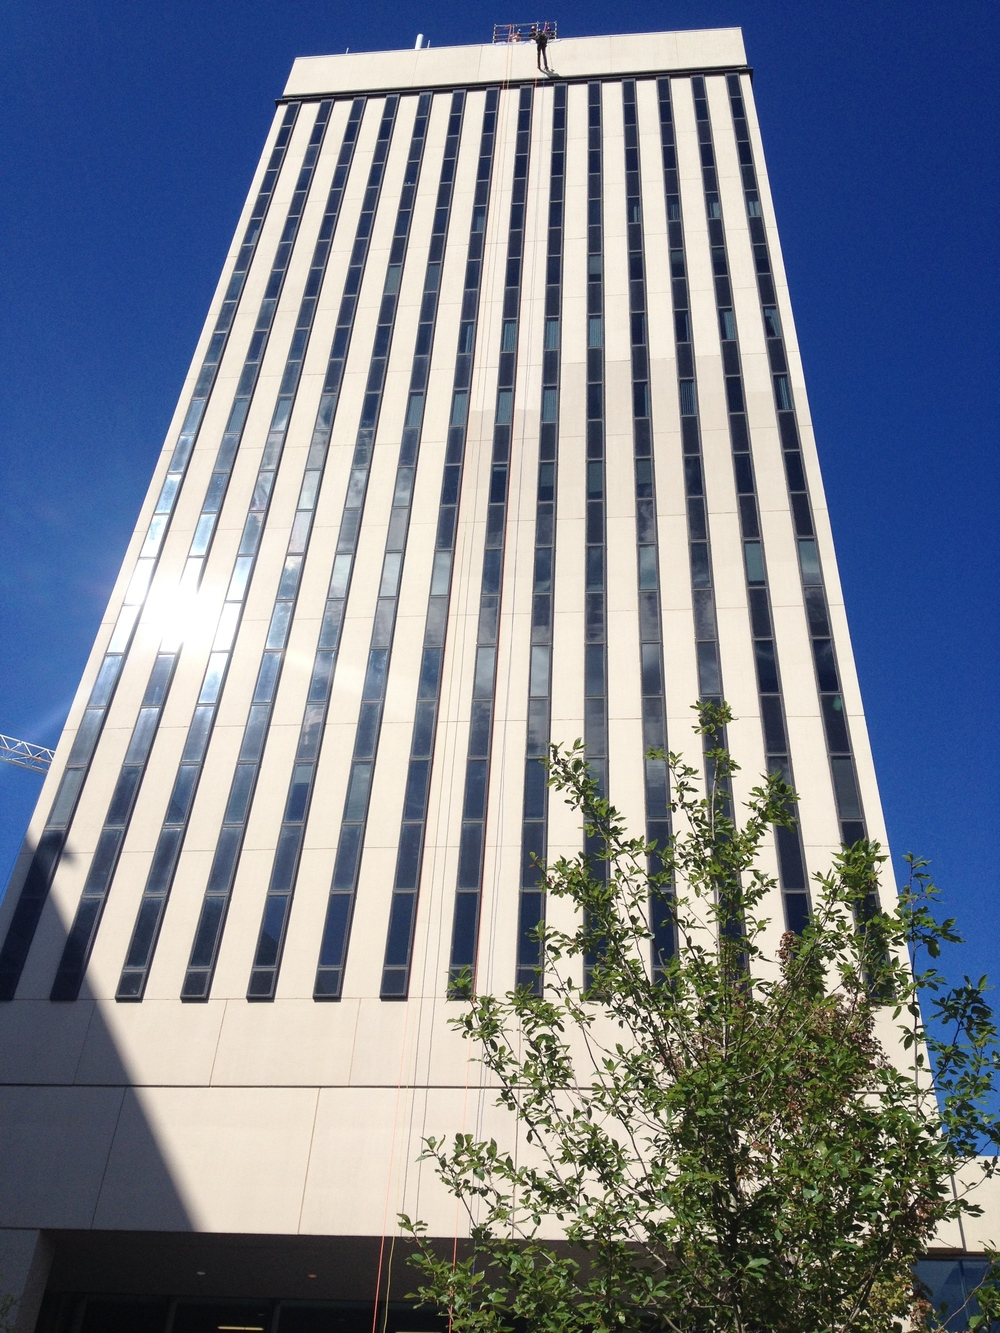 The Bank of America is 228 feet tall and did not block the aggressive wind during the rappel.